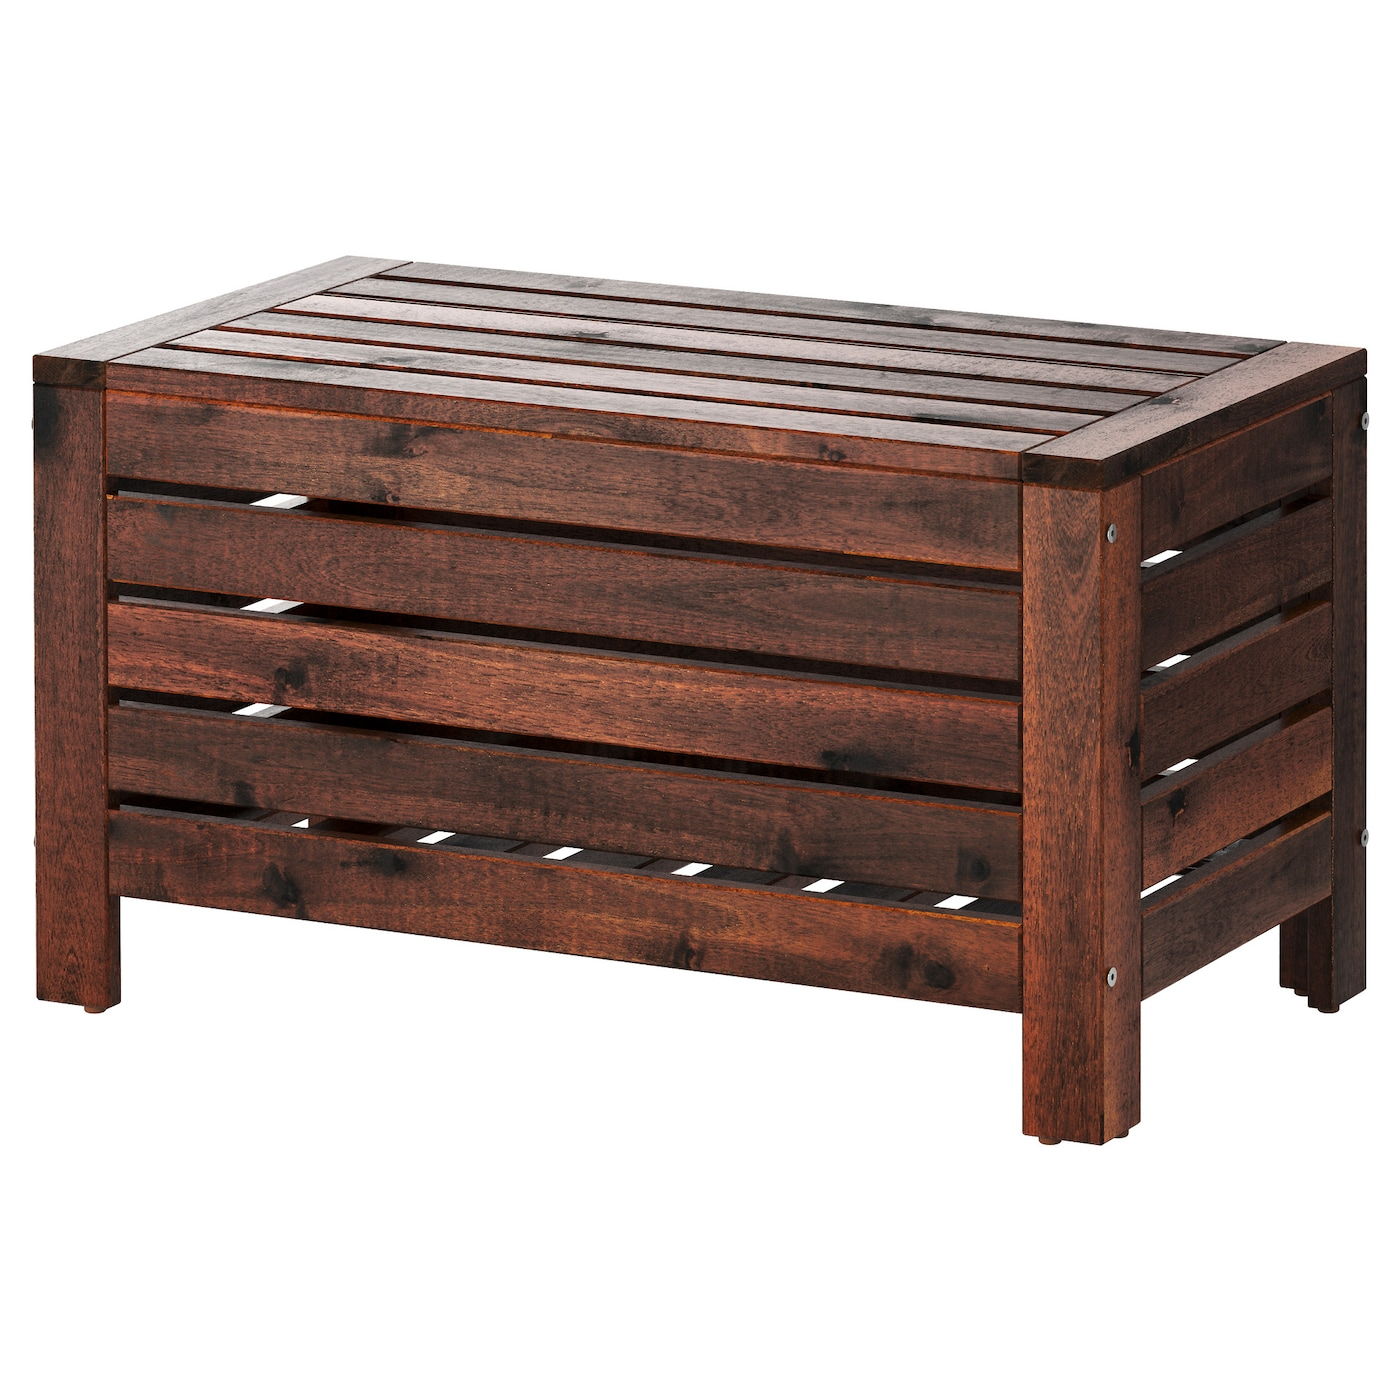 Pplar storage bench outdoor brown stained 80x41 cm ikea Storage benches